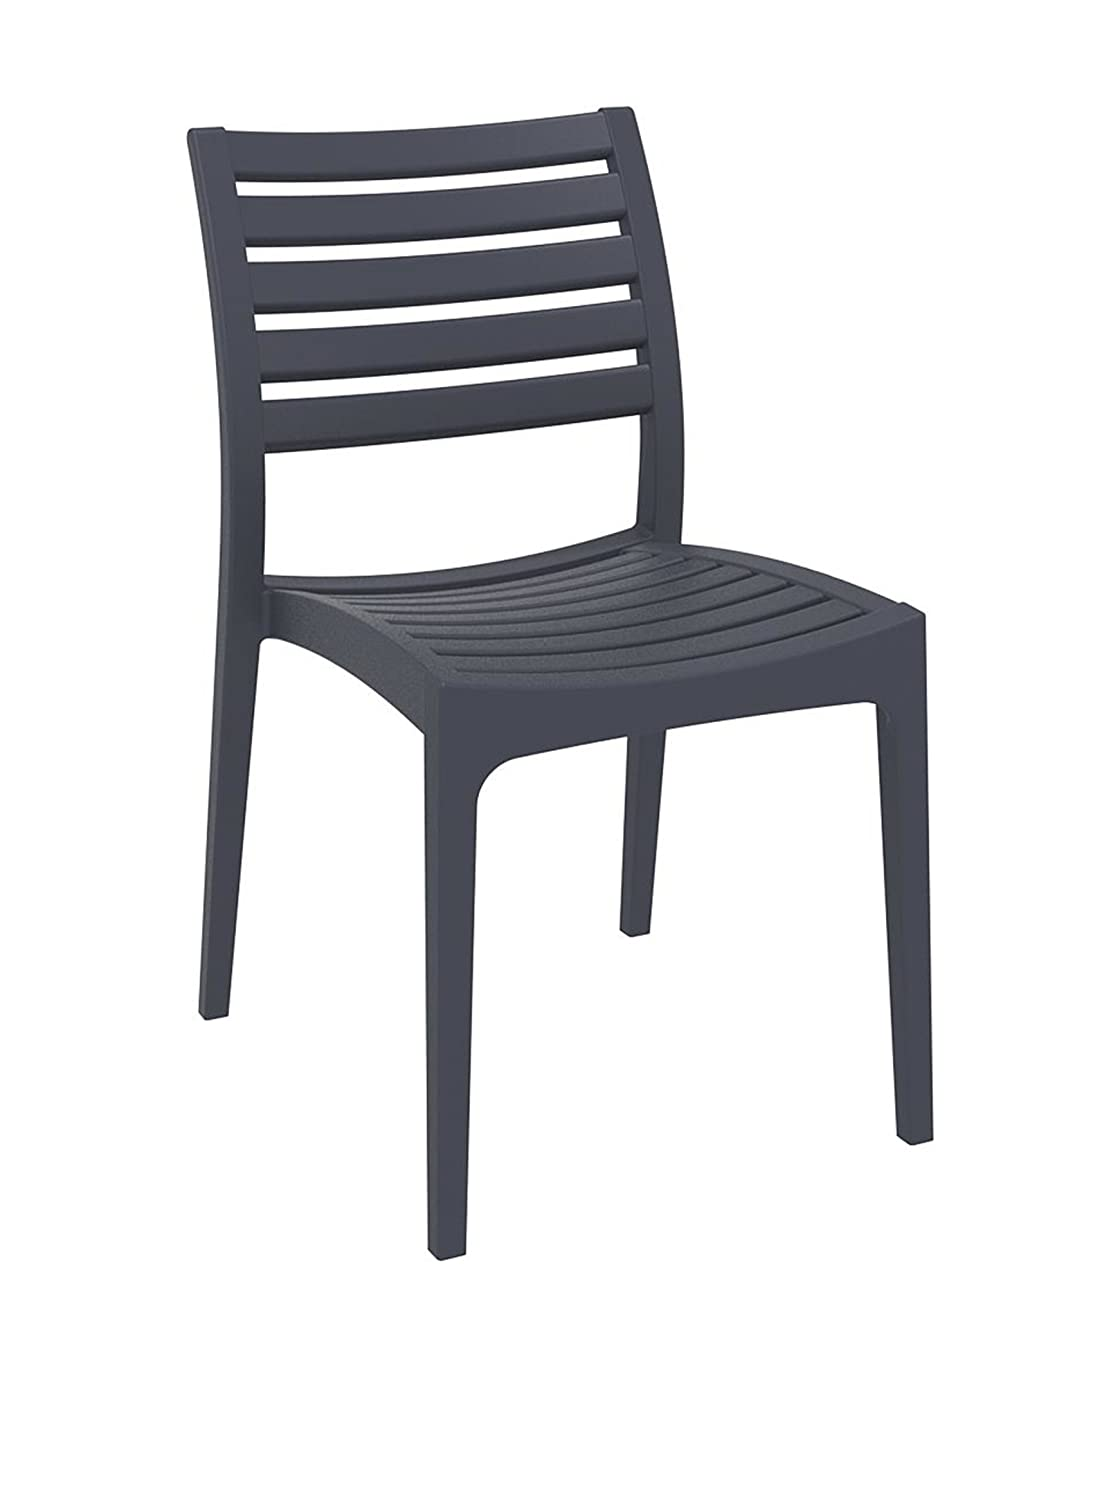 Amazon com ares resin outdoor dining chair 2 chairs dark gray garden outdoor